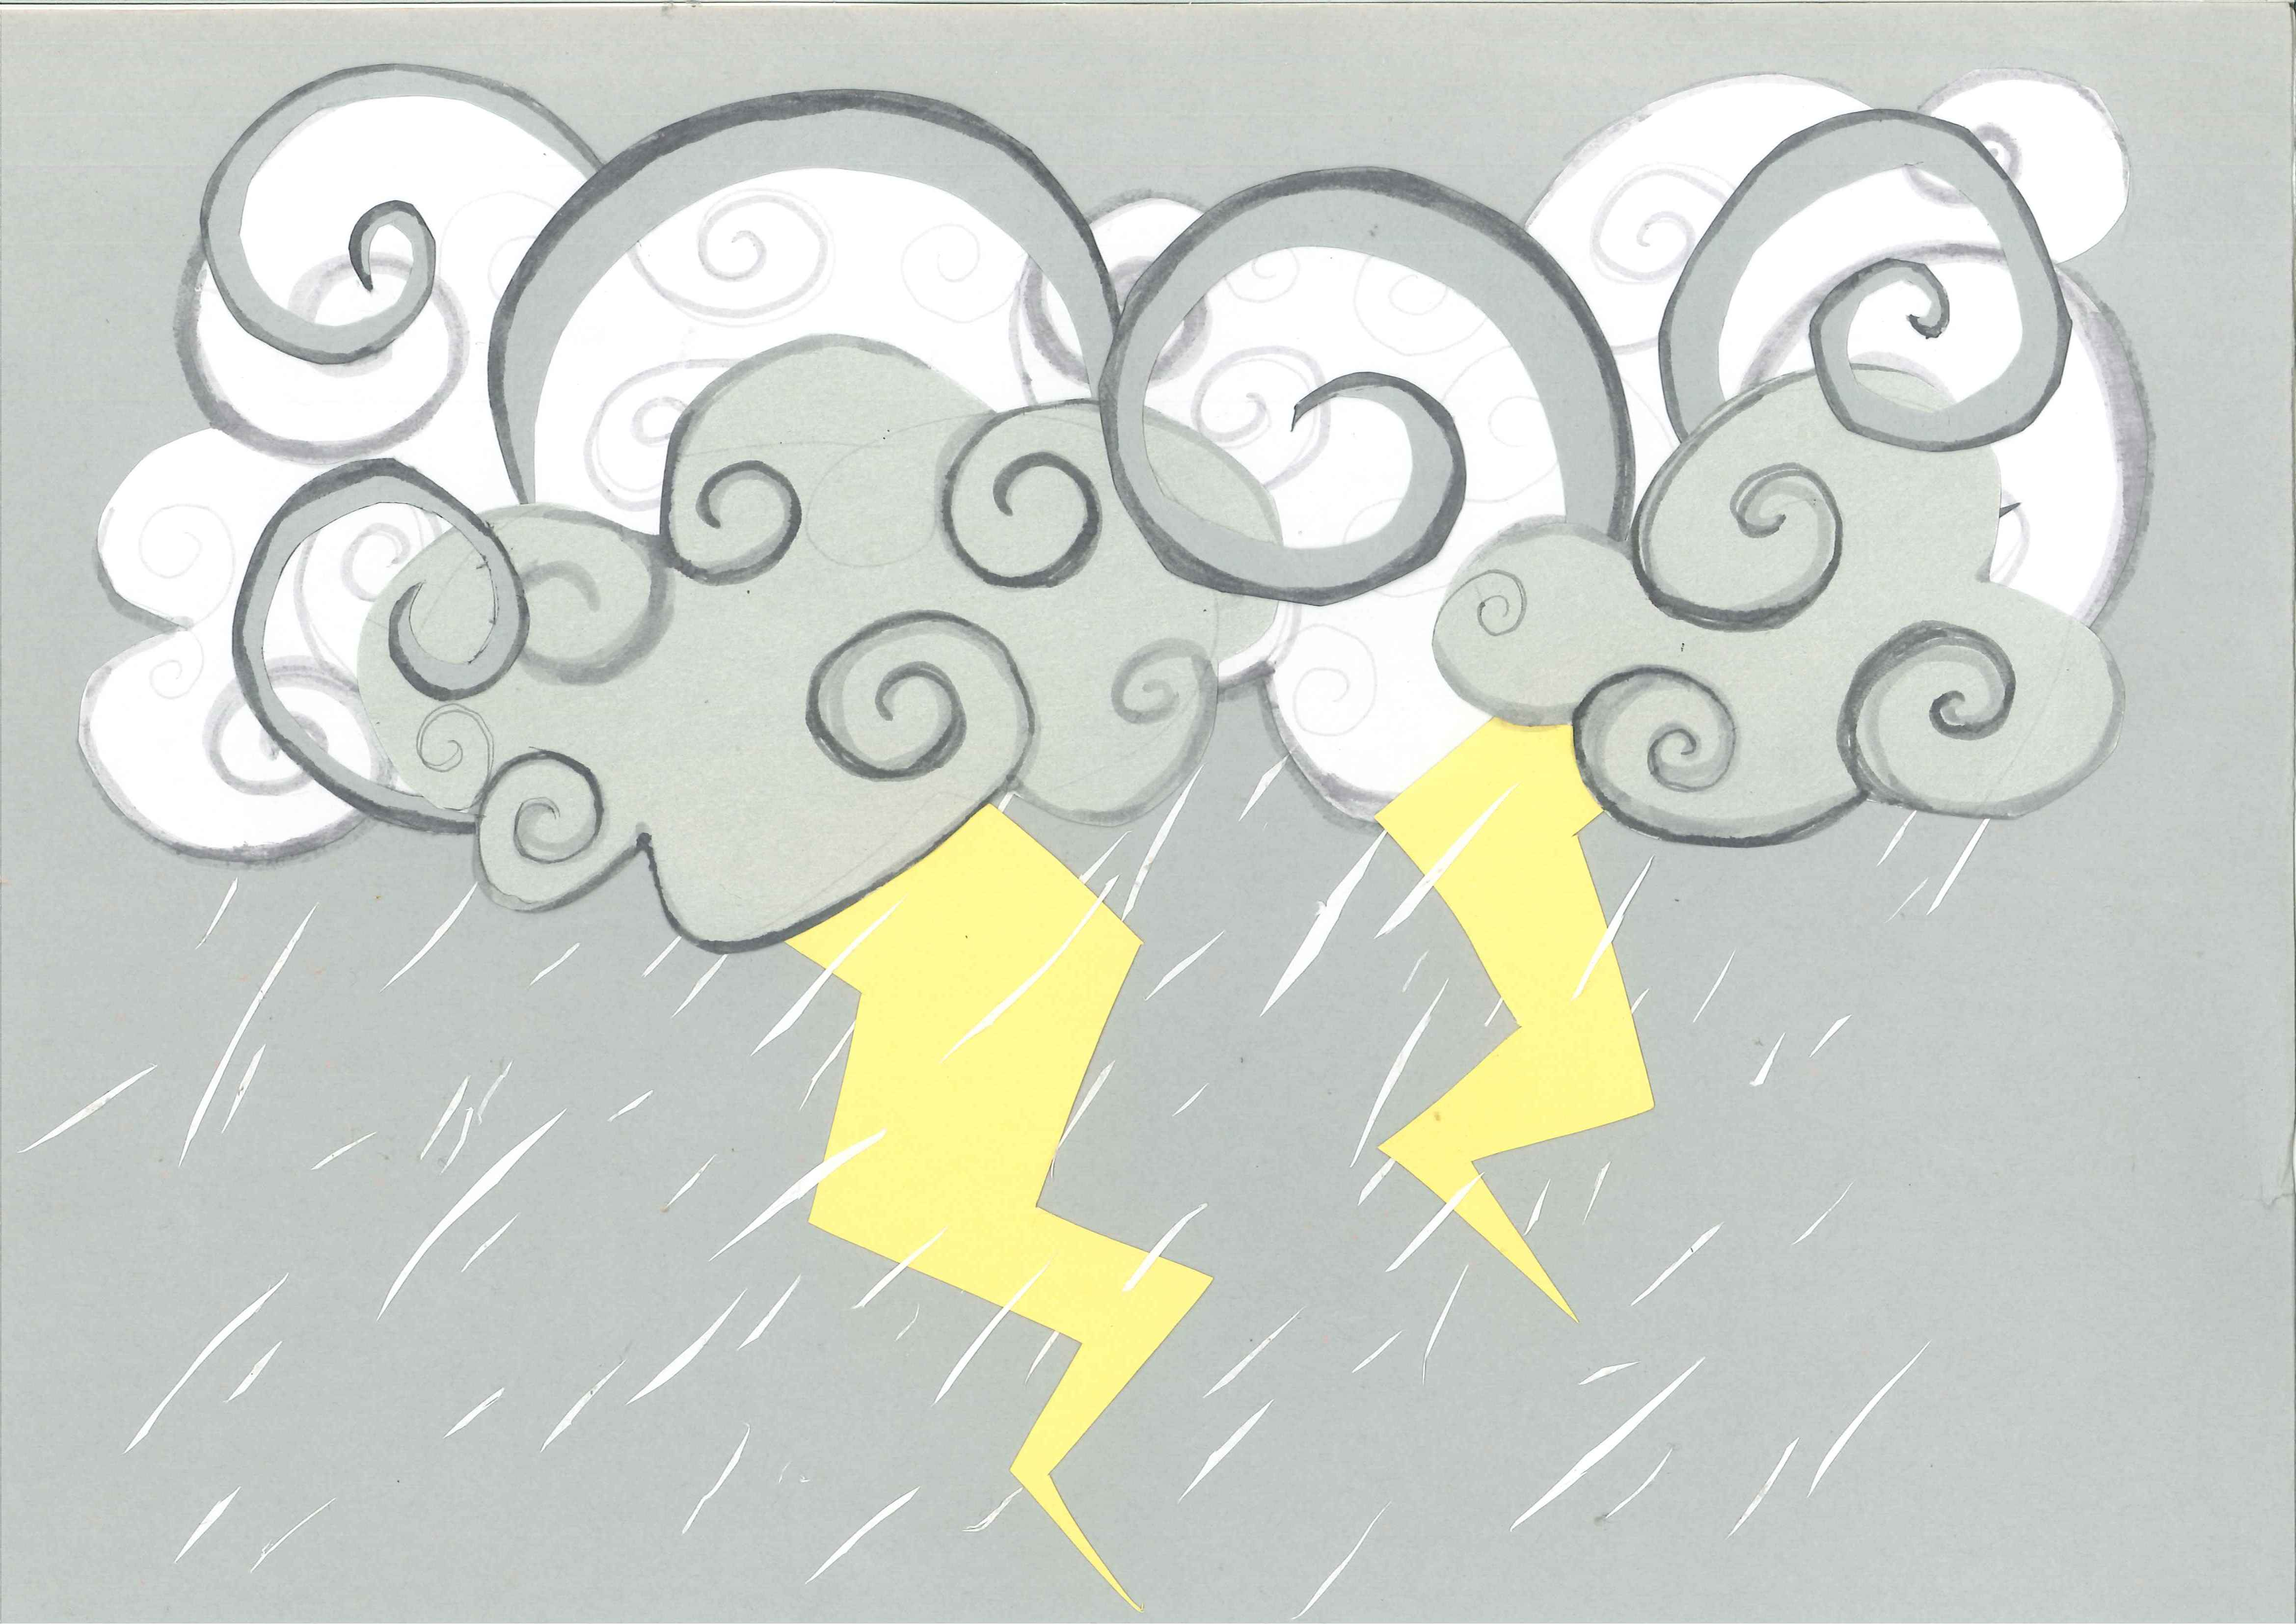 Free Stormy Cliparts, Download Free Clip Art, Free Clip Art.